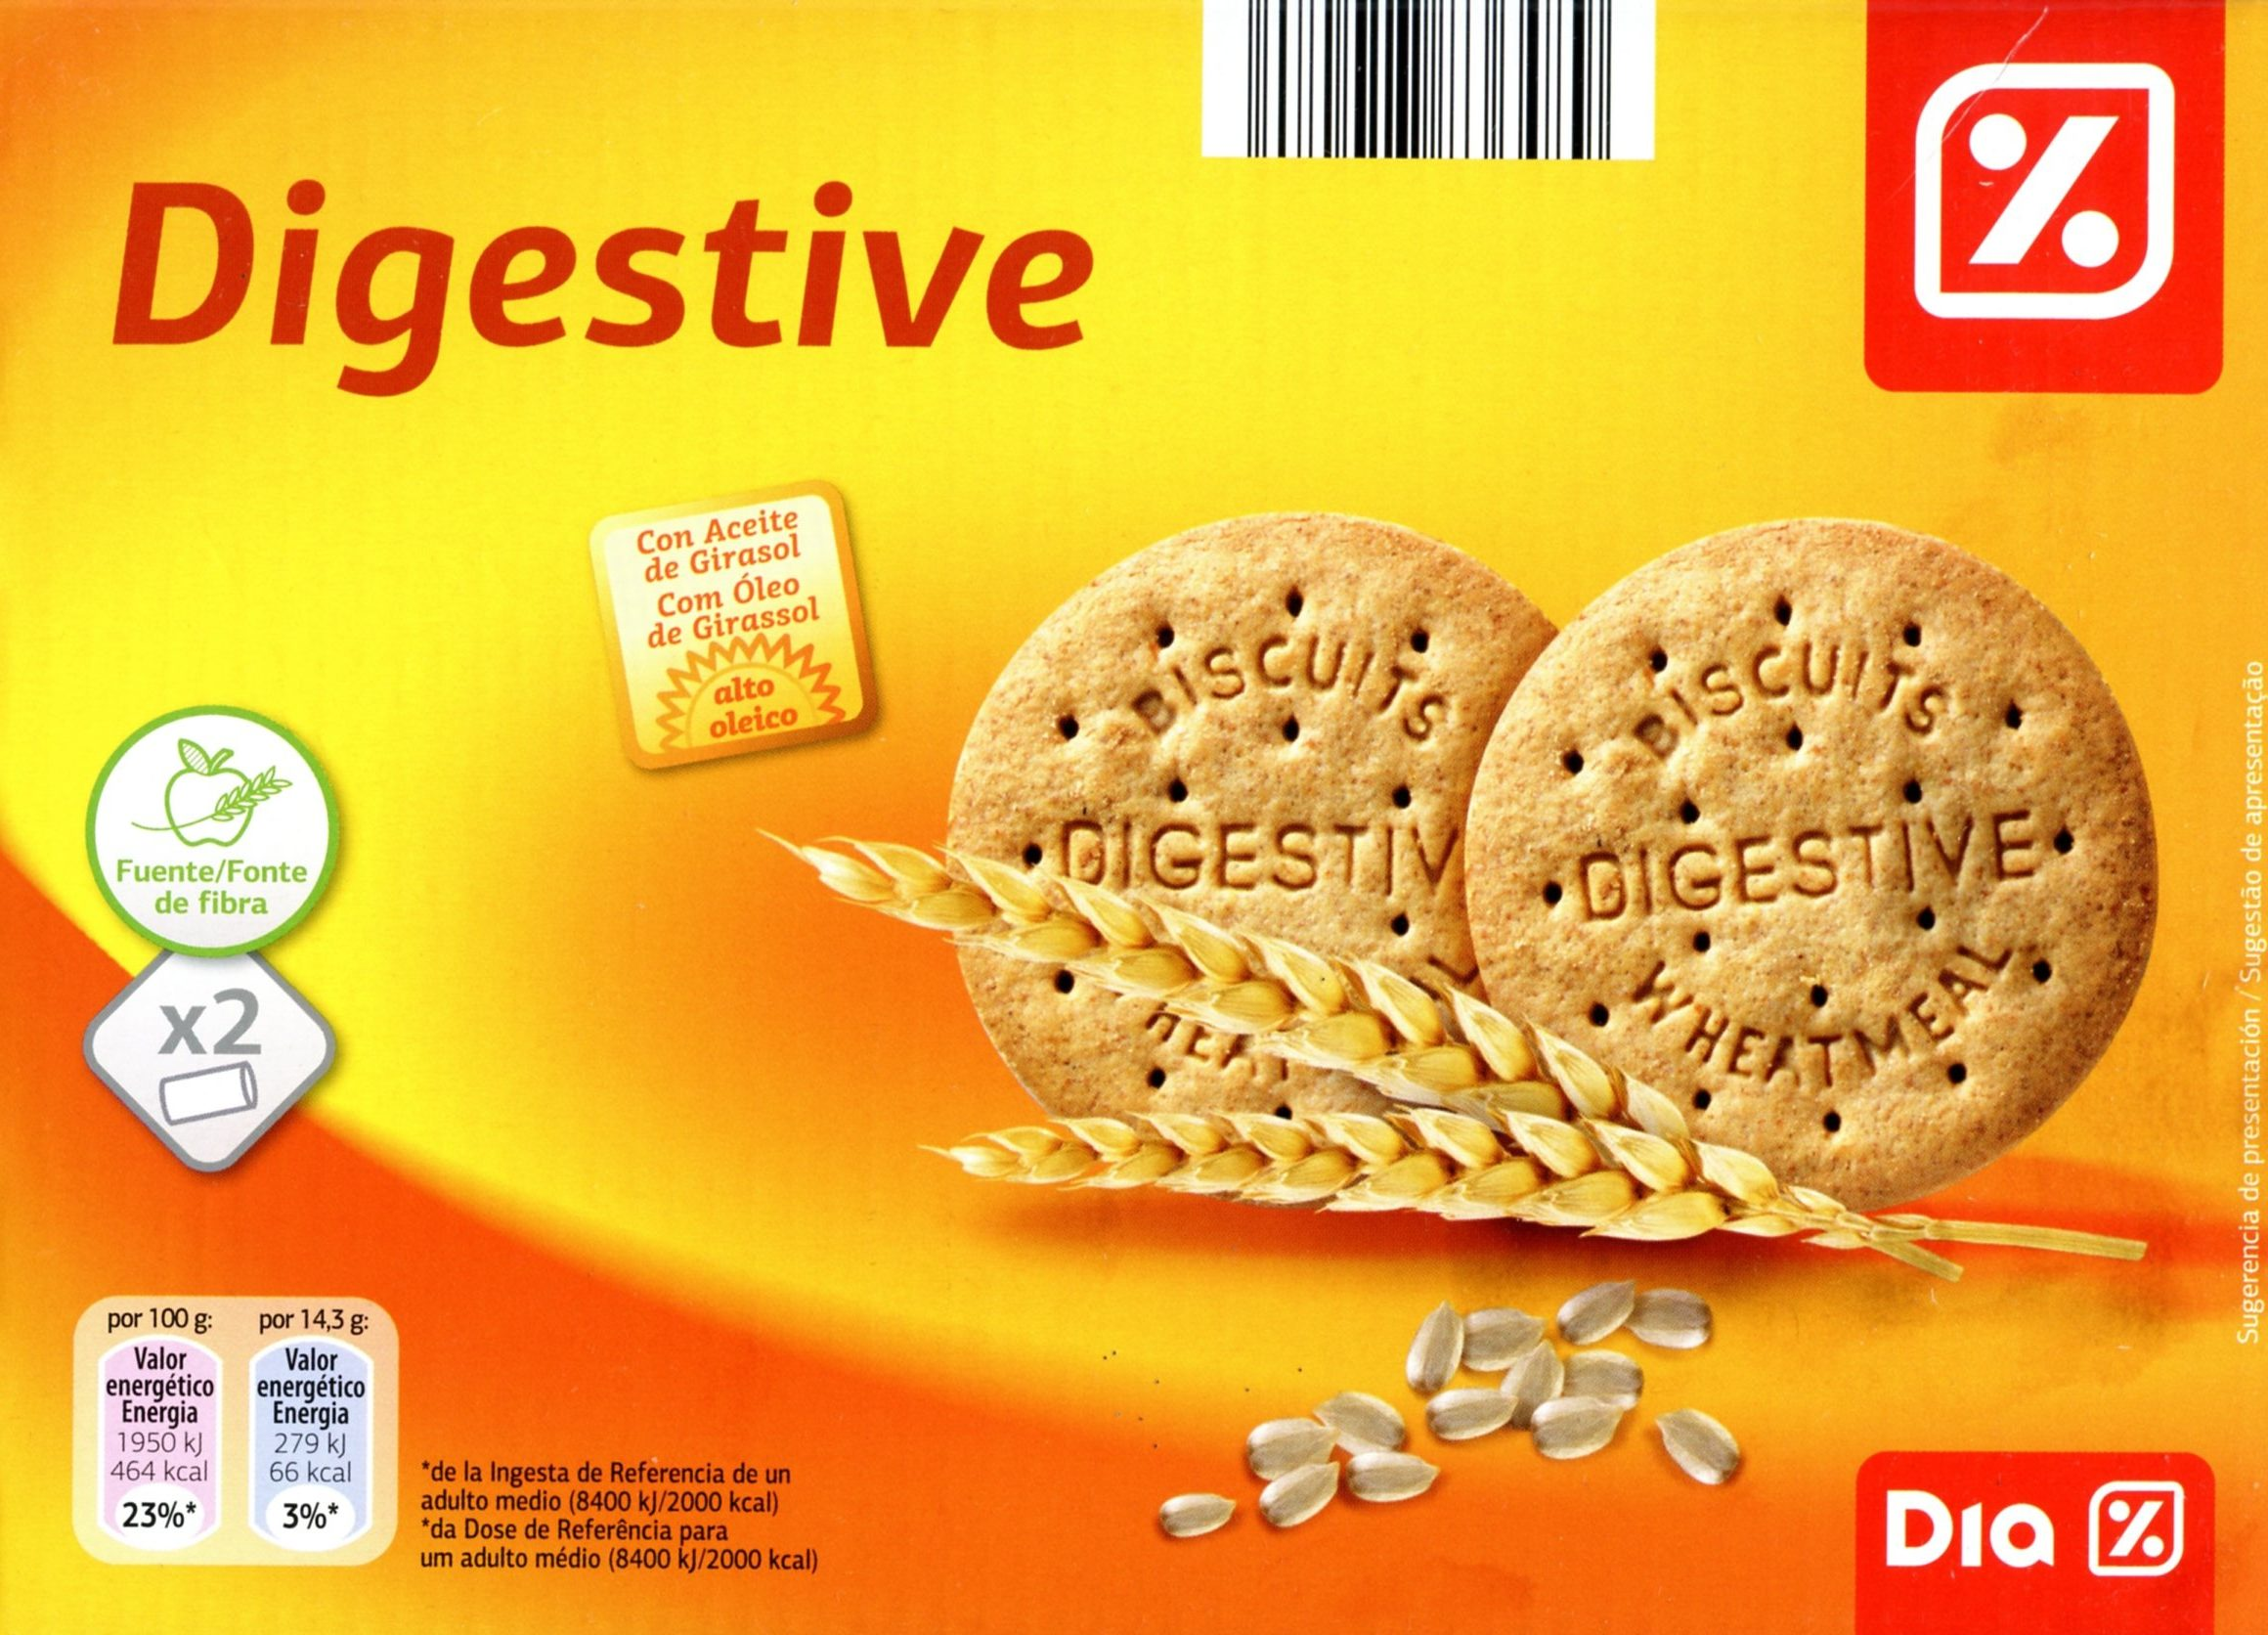 Digestive - Producto